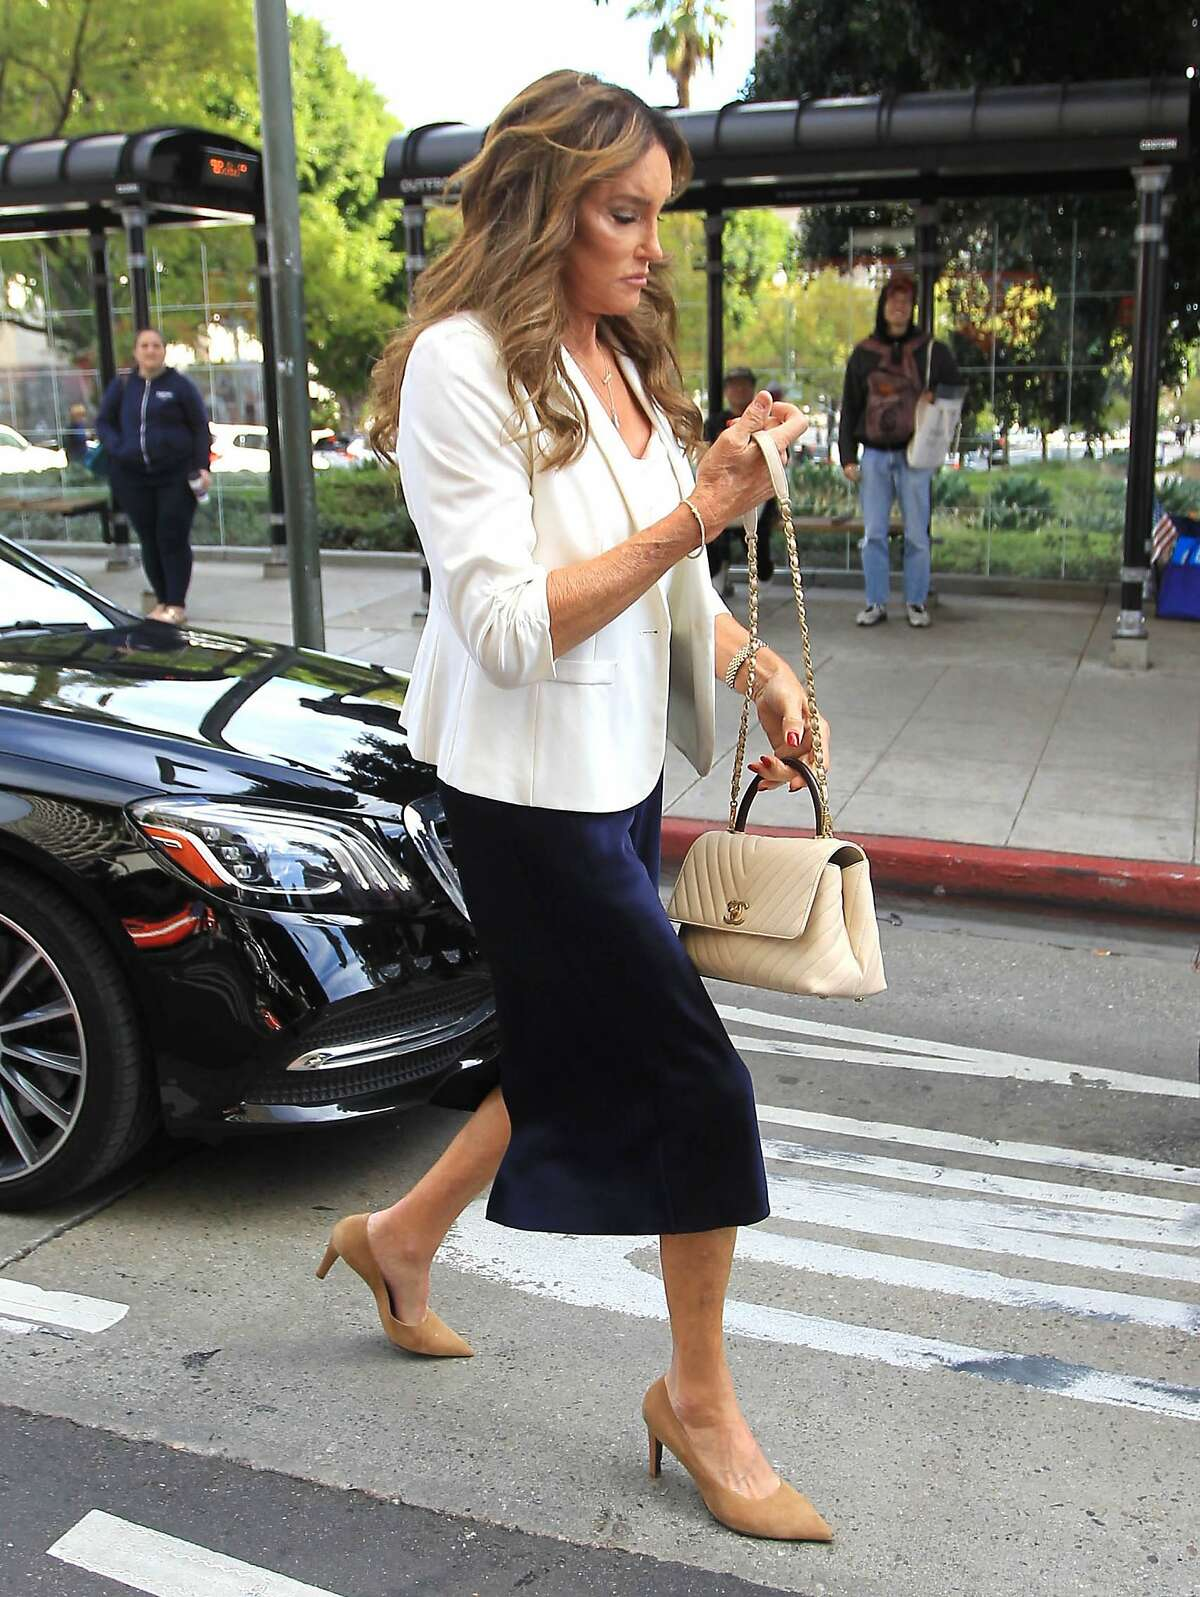 Caitlyn Jenner's manager has denied reports that she is considering challenging Gov. Gavin Newsom.